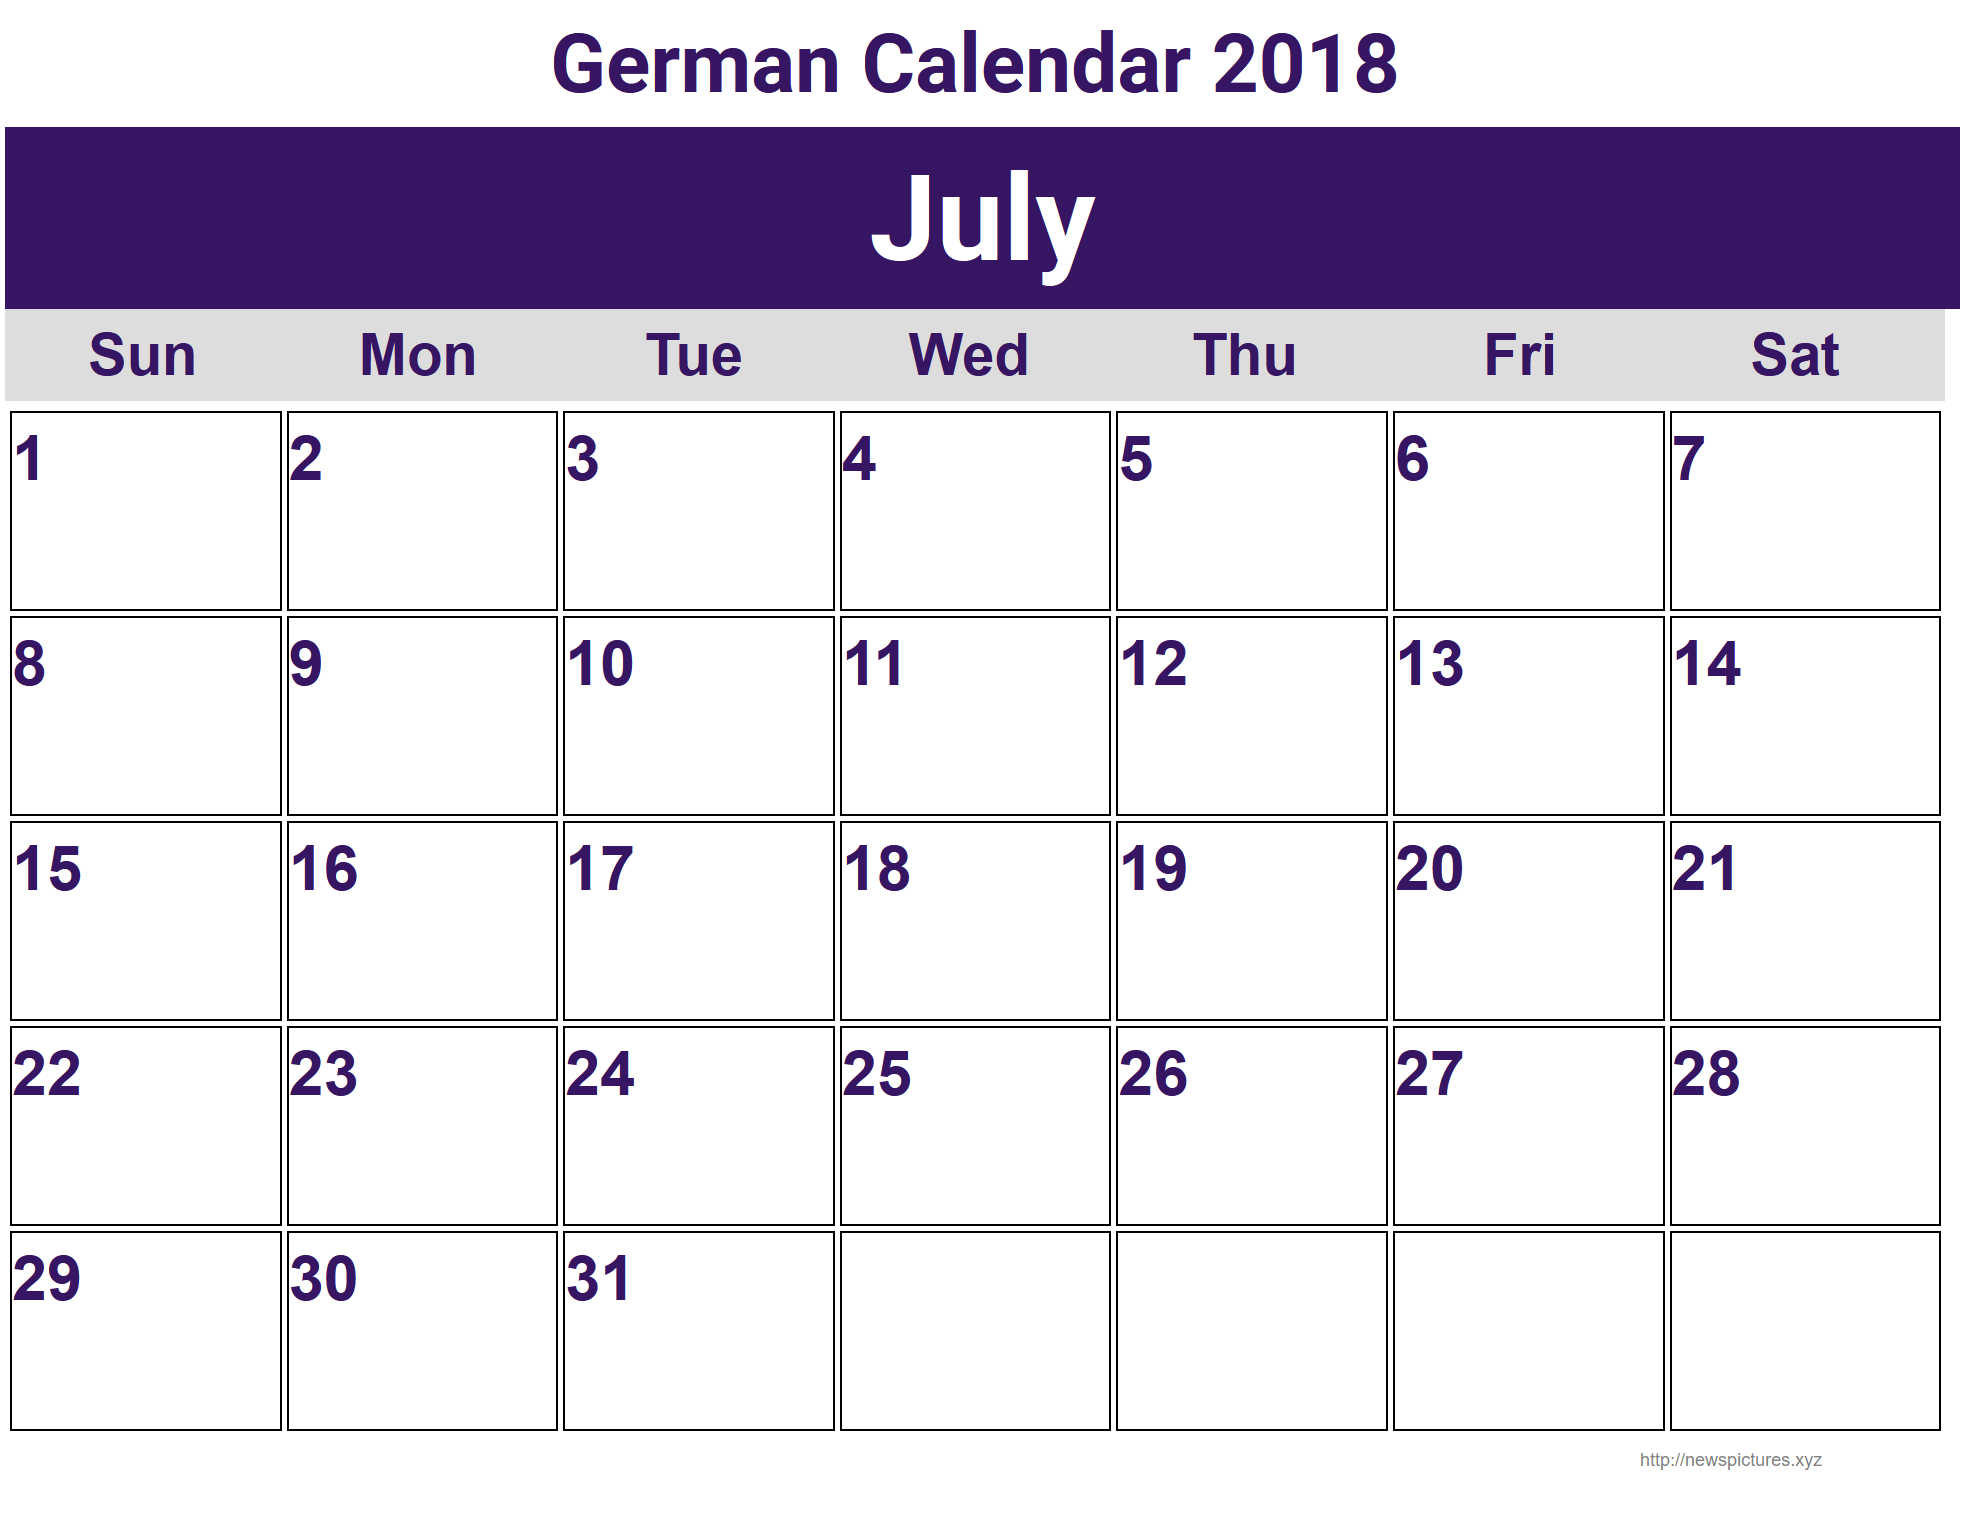 July German Calendar 2018